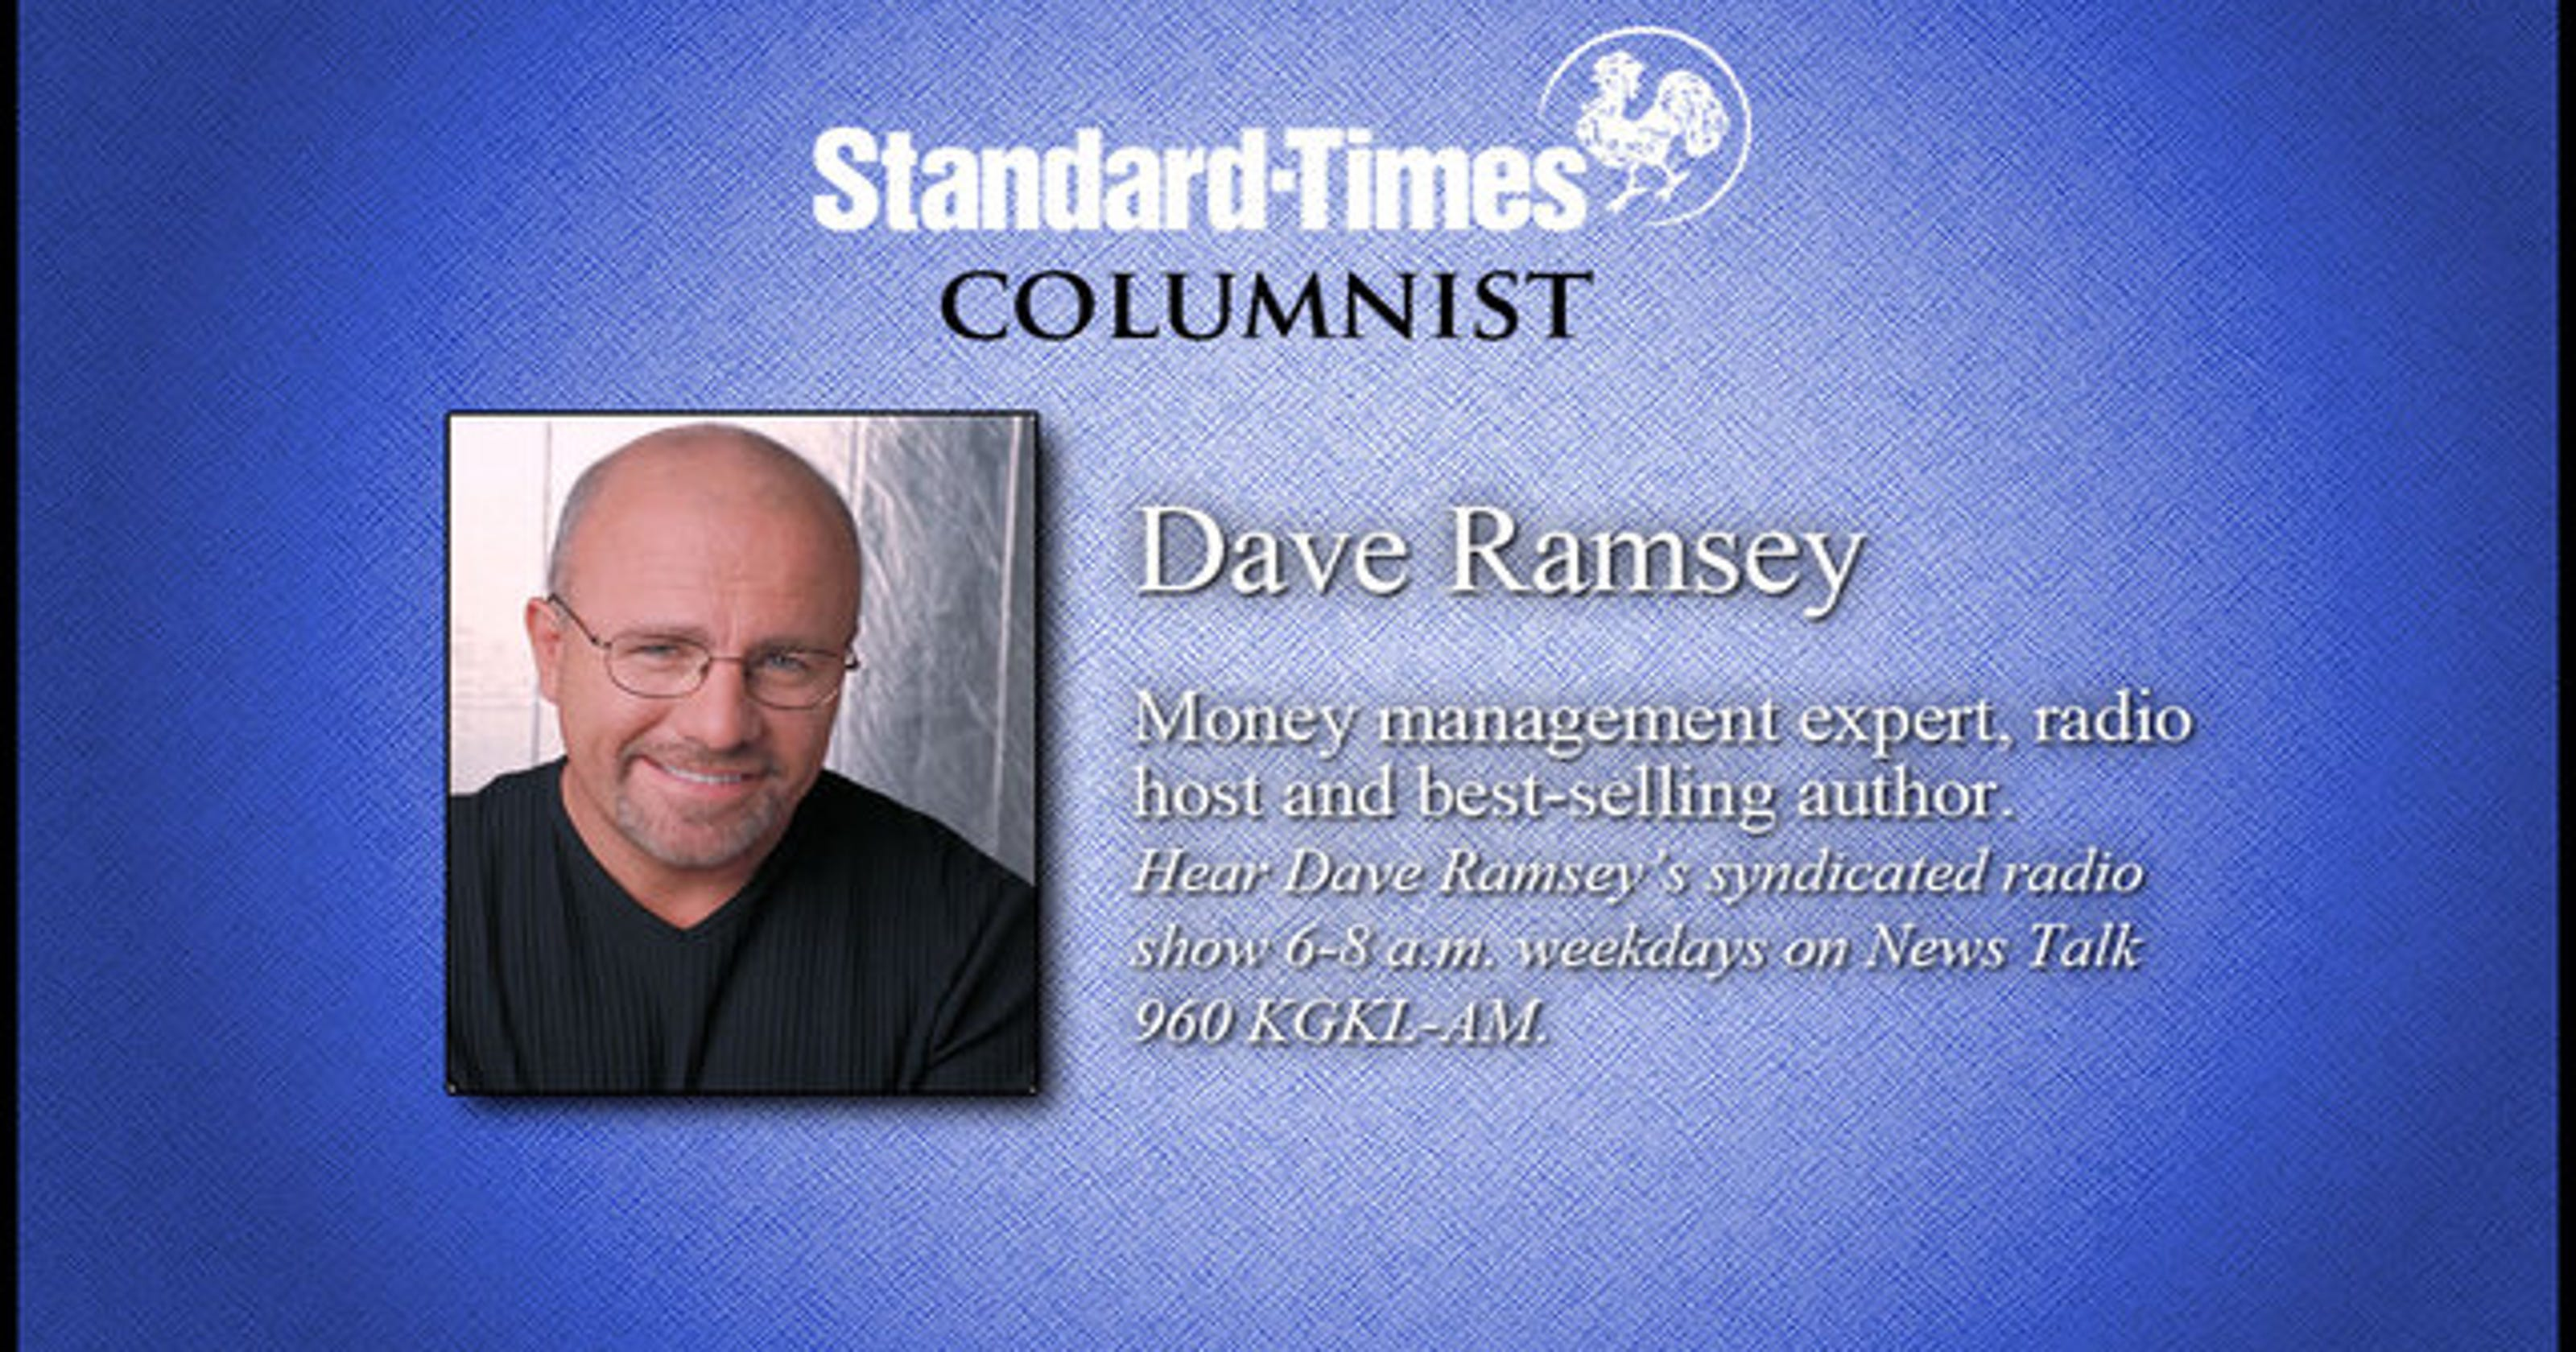 Dave Ramsey Peace Of Mind Should Be Goal For 95 Year Old